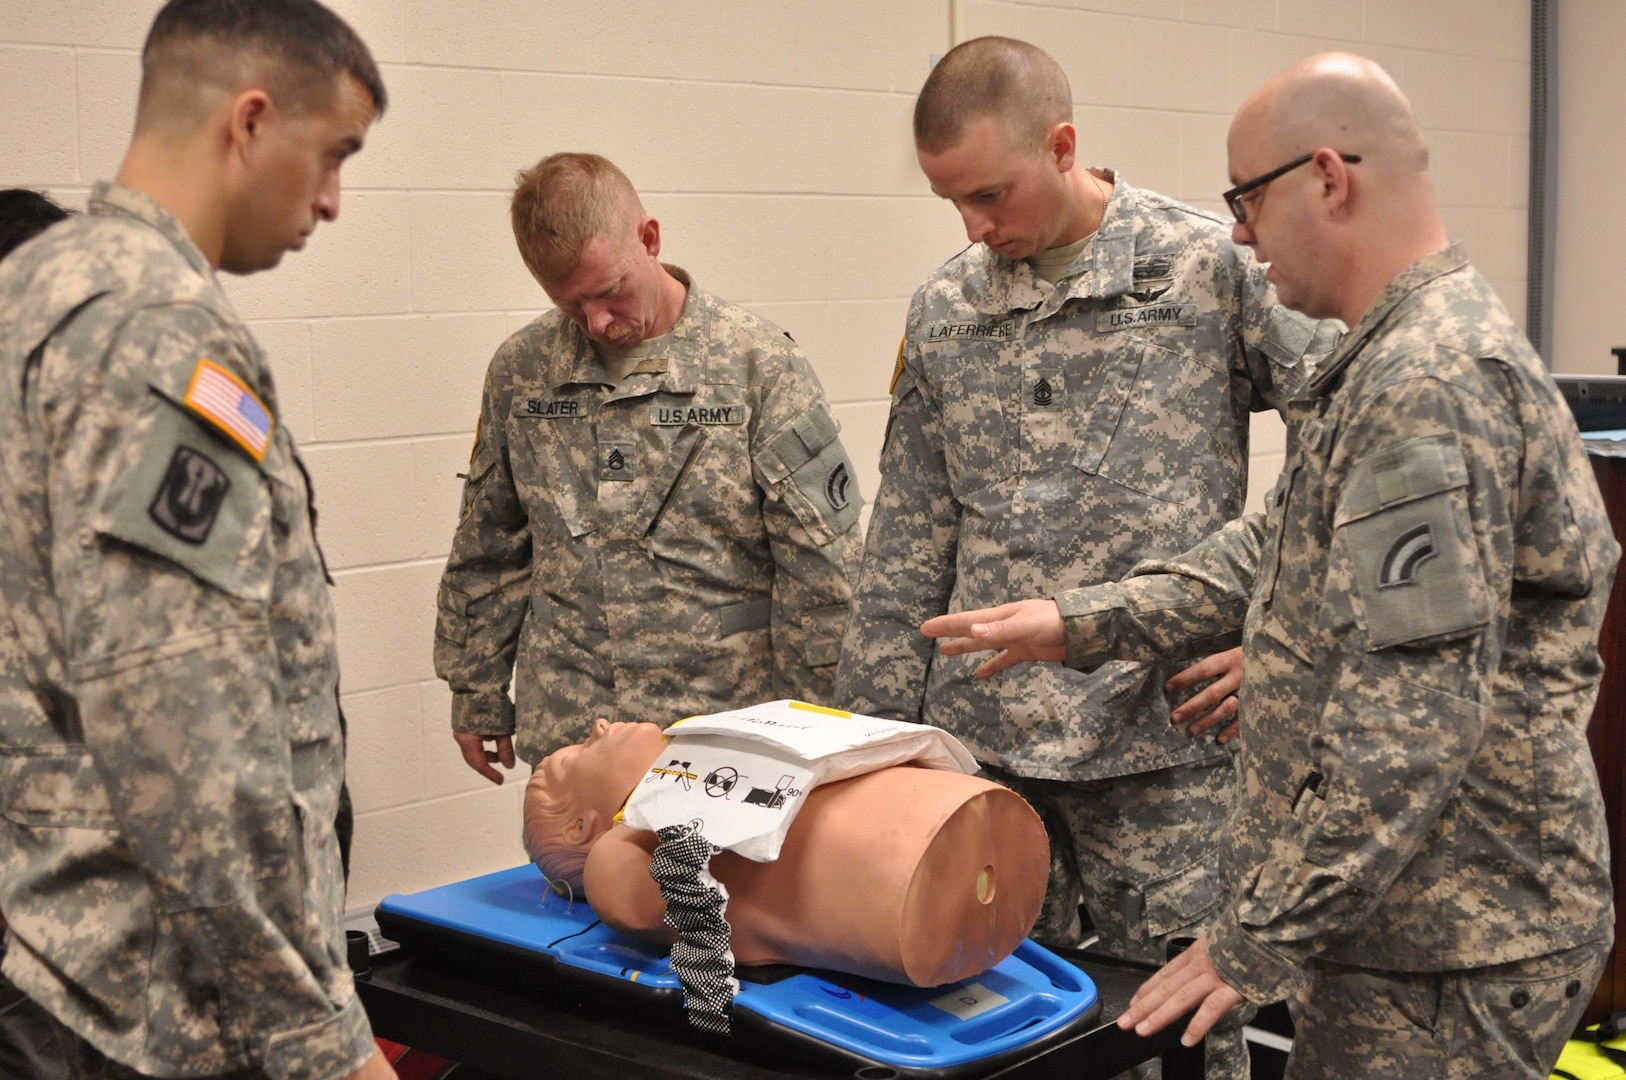 Automatic Chest Compression Device Customer Demonstration